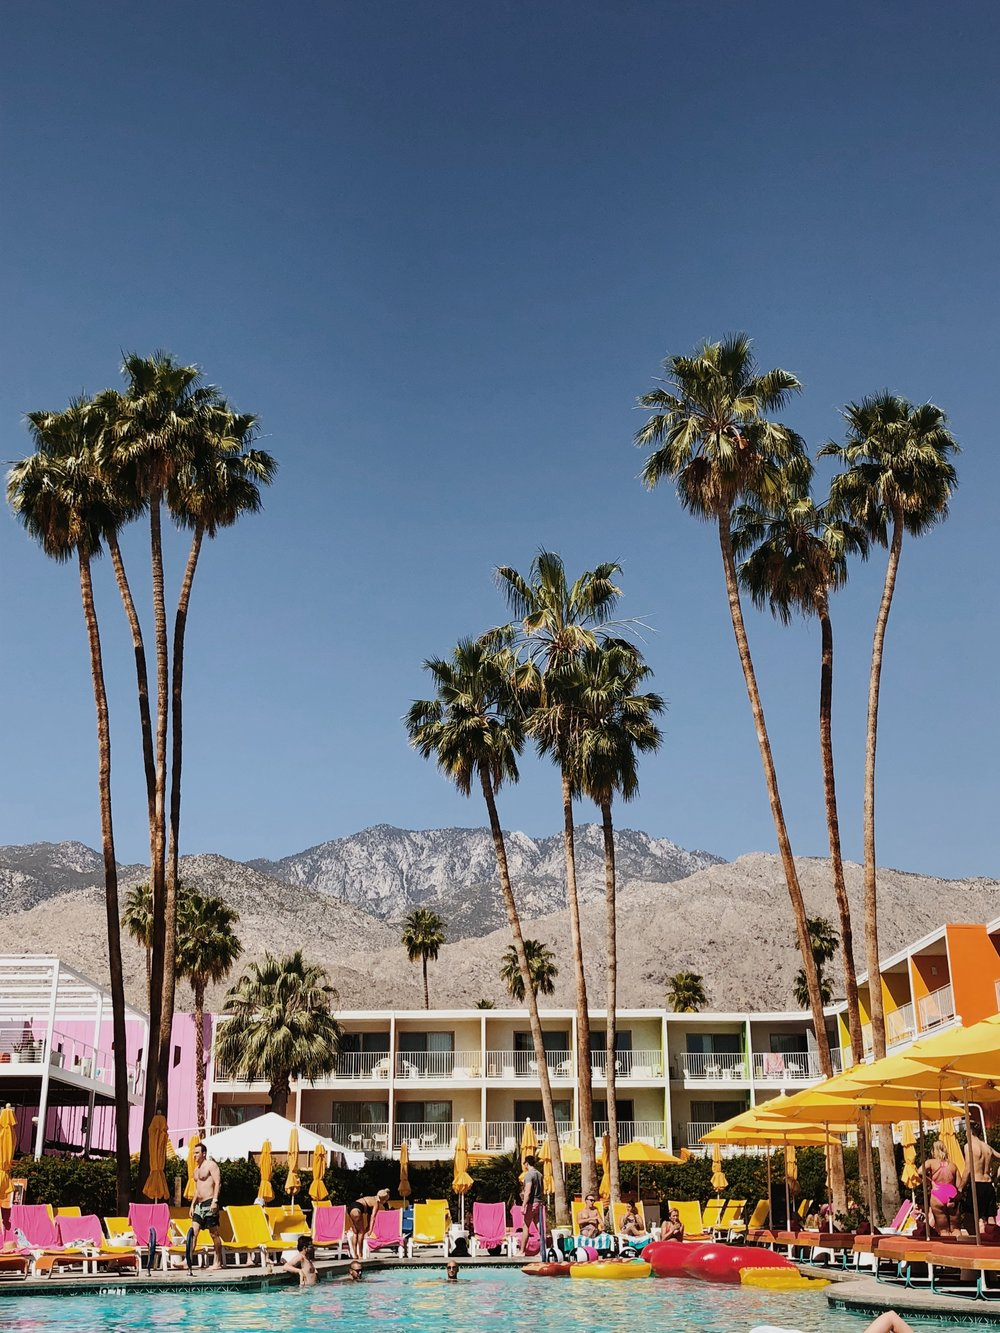 hotel with palm trees and a pool in front of mountains and blue sky